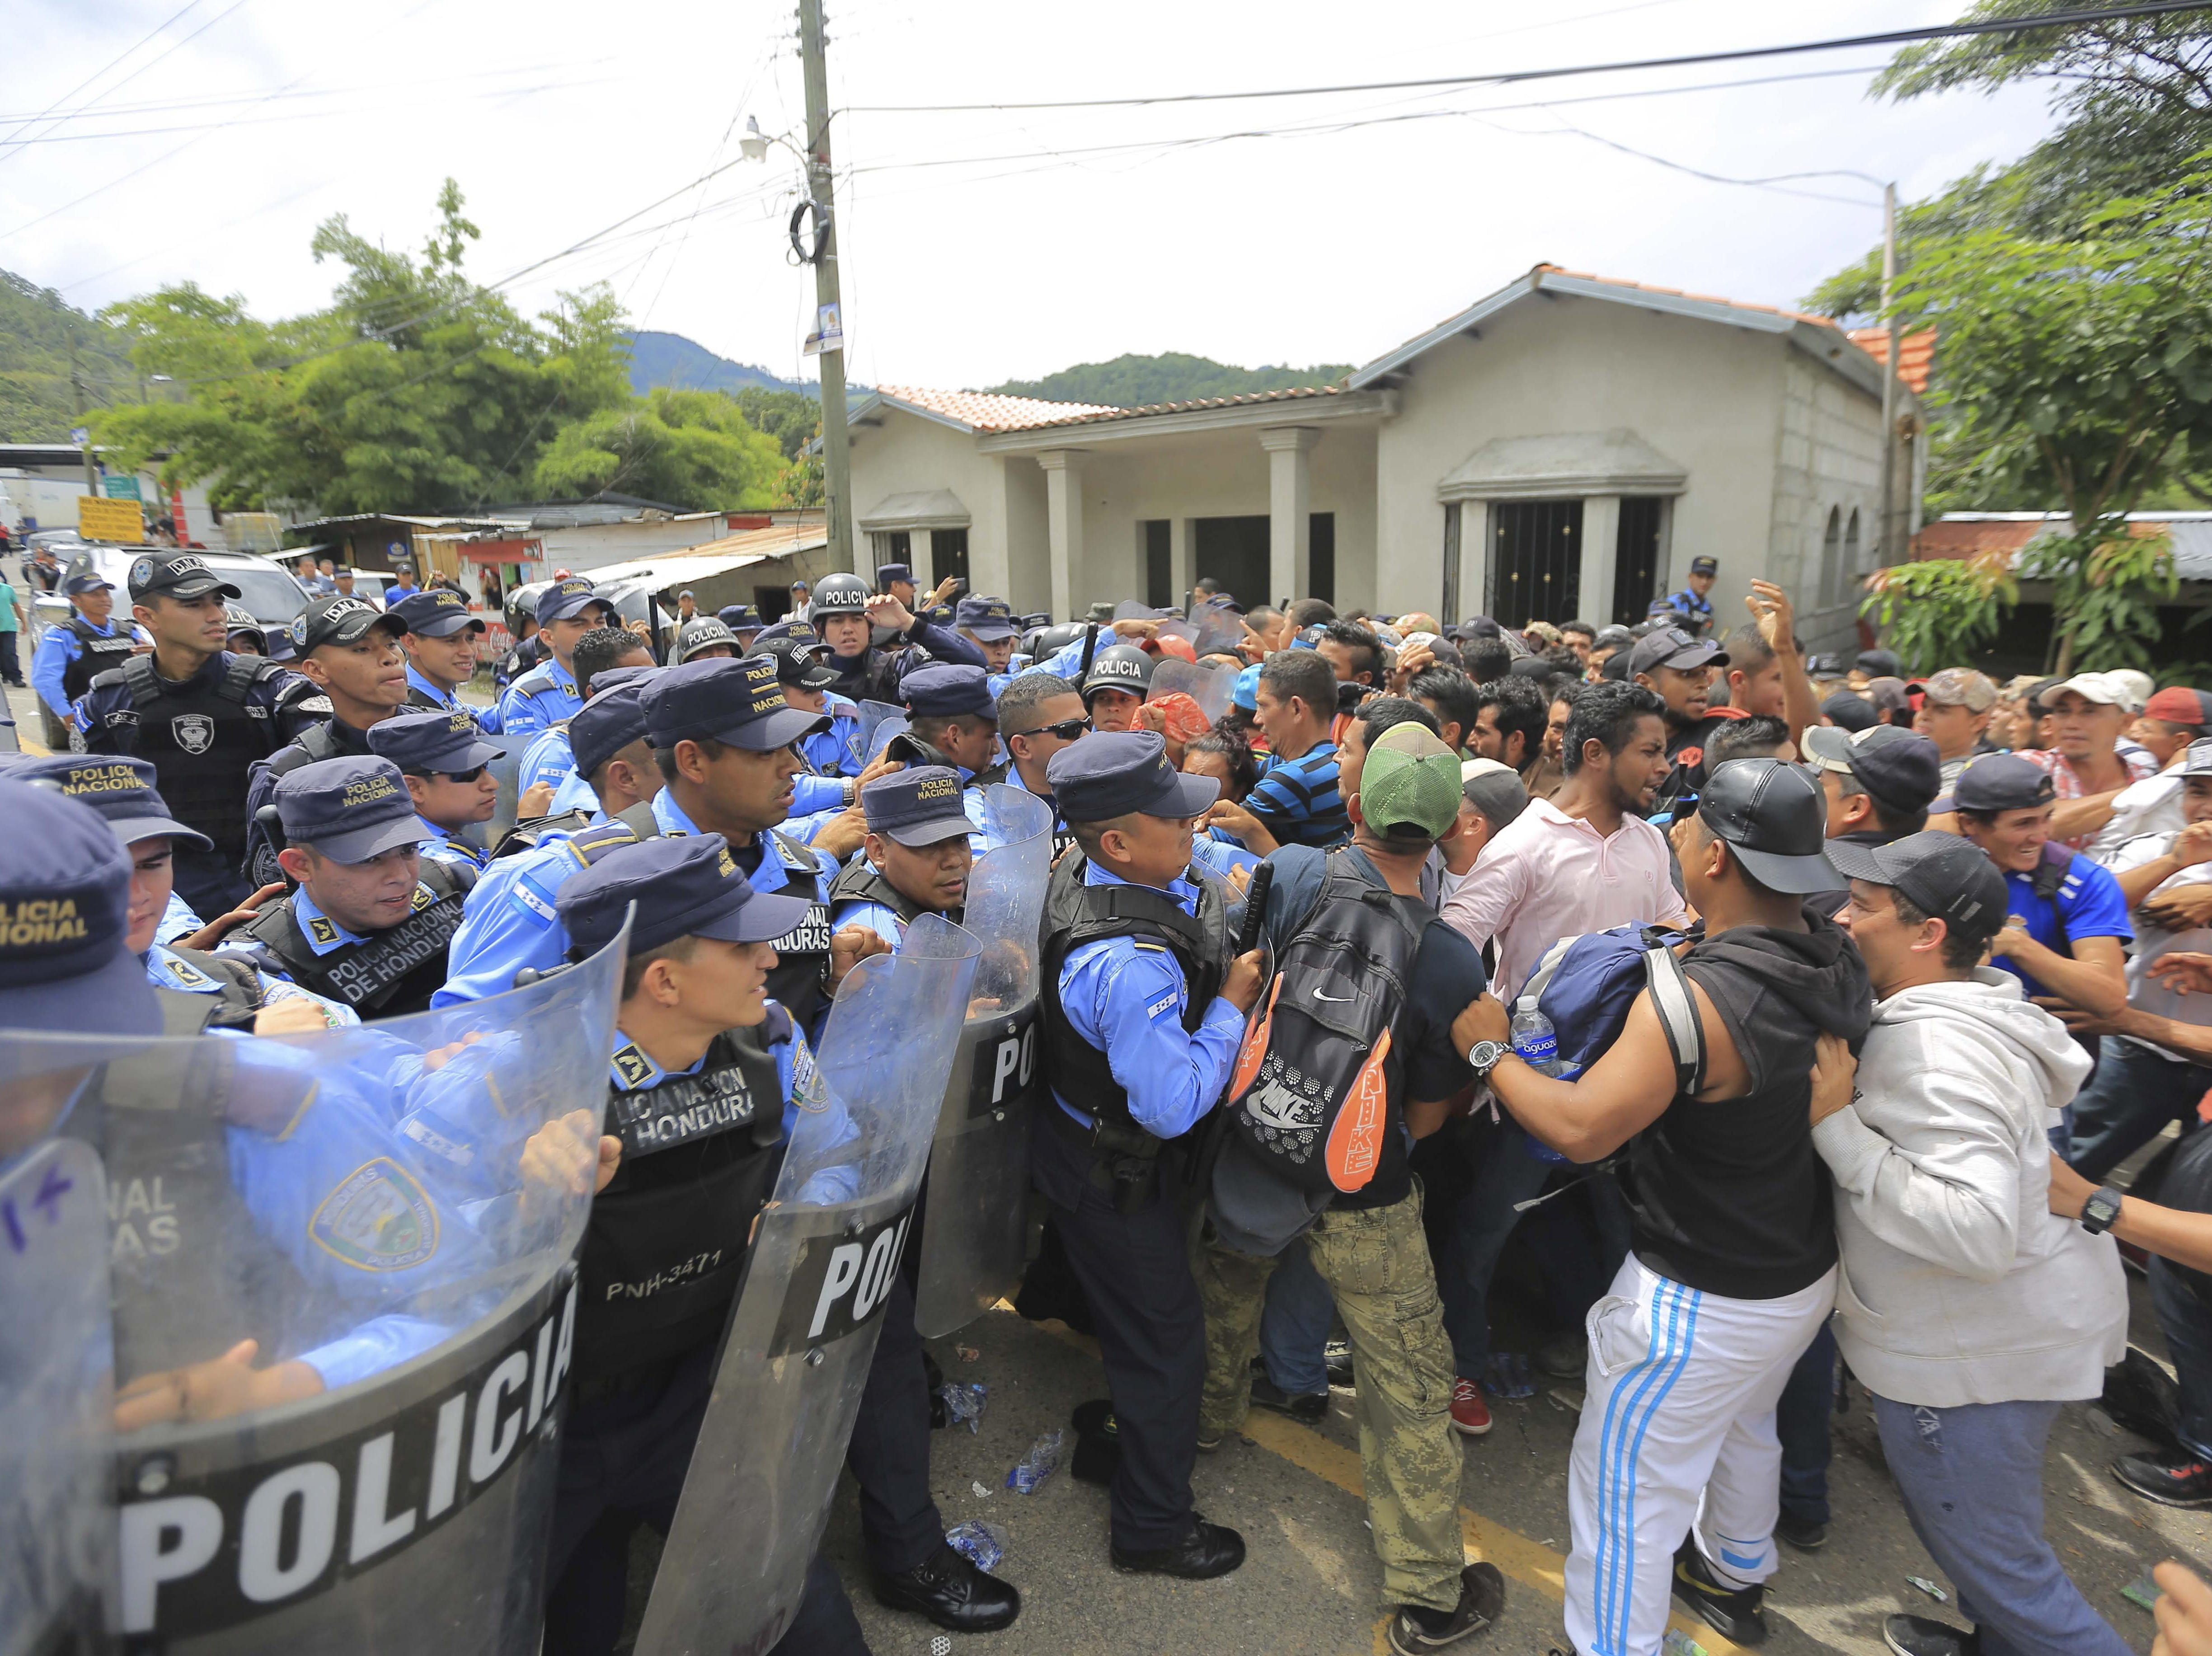 Police try to prevent hundreds of Honduran migrants to cross a police checkpoint to Guatemala, at the Agua Caliente border crossing, in Ocotepeque, Honduras on Oct. 19, 2018.